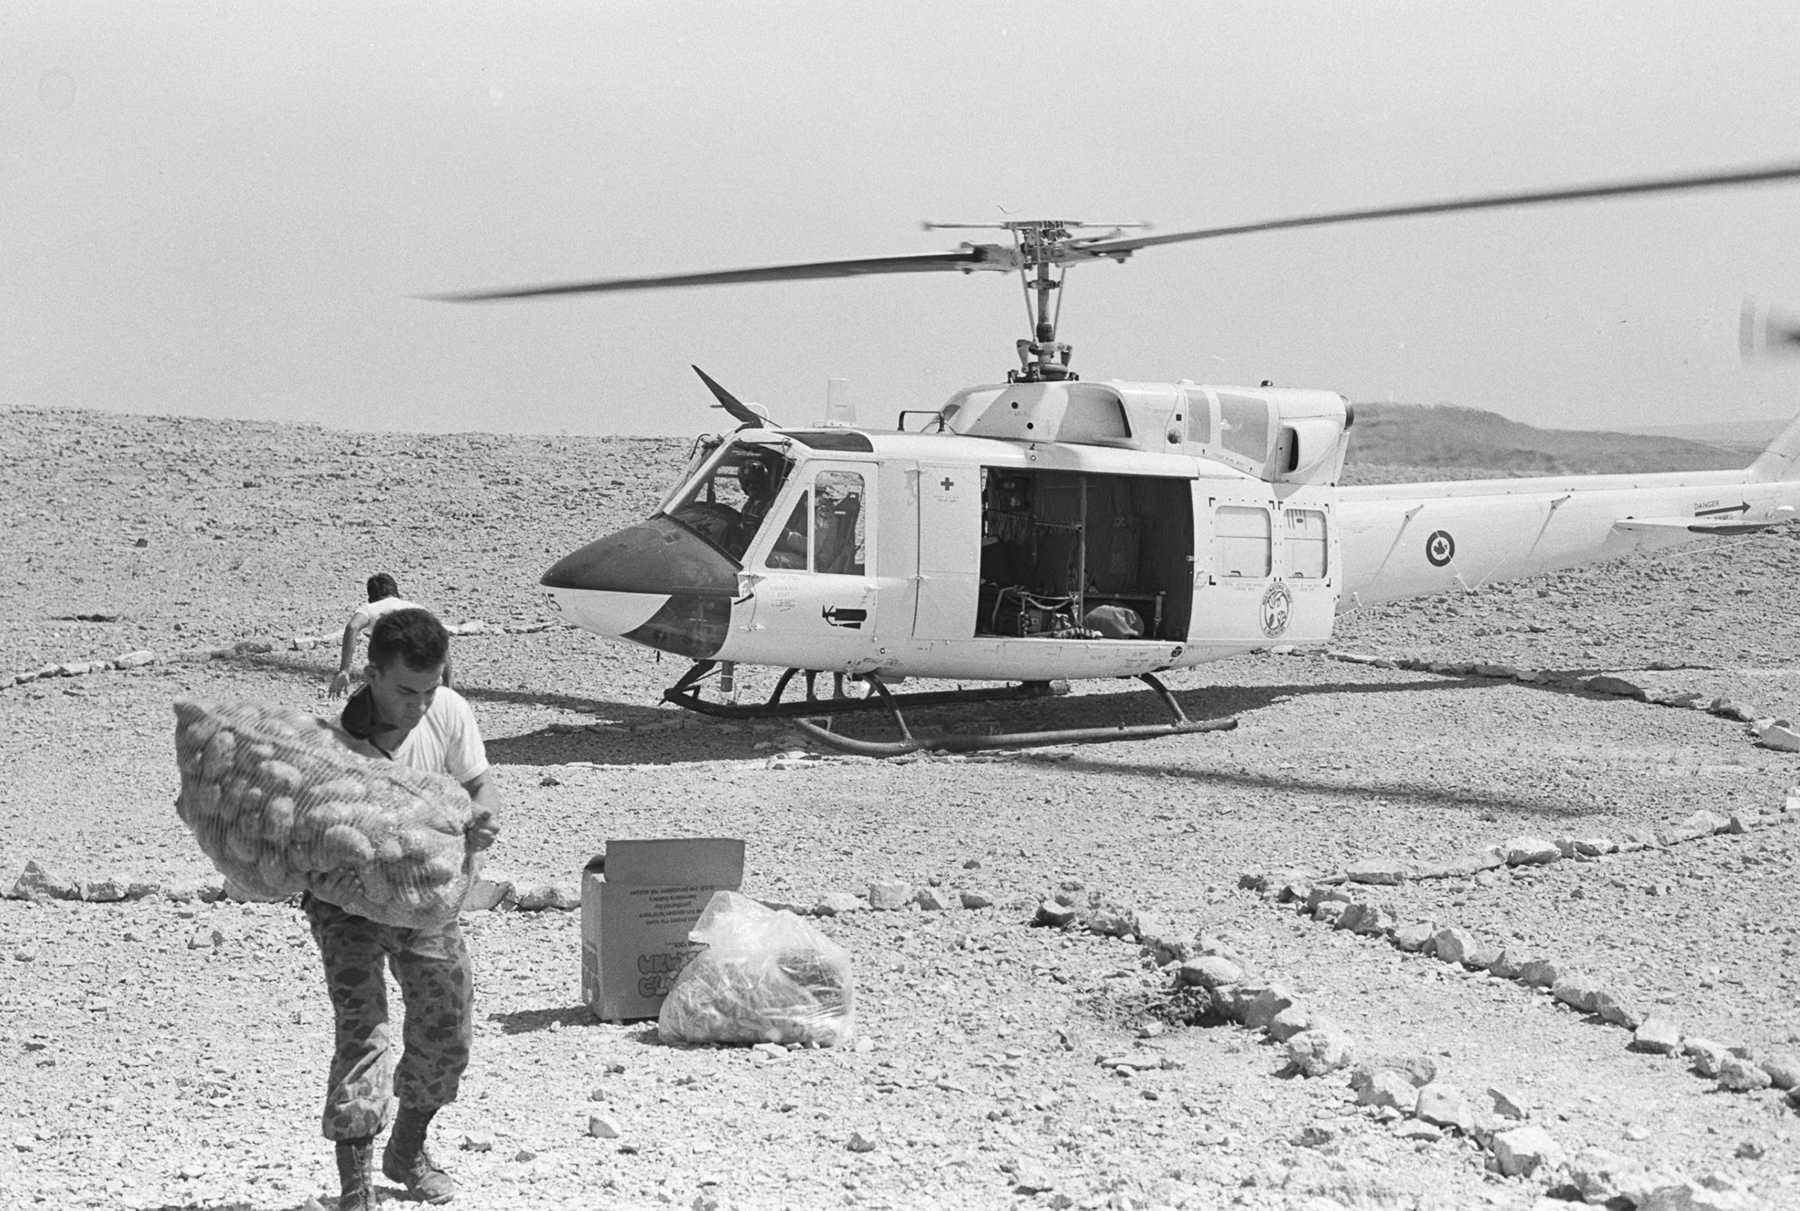 A Columbian soldier carries supplies delivered by a Royal Canadian Air Force 408 Squadron helicopter on Multinational Force and Observers duty in the Sinai Desert in 1986. PHOTO: Sergeant Tim Smith